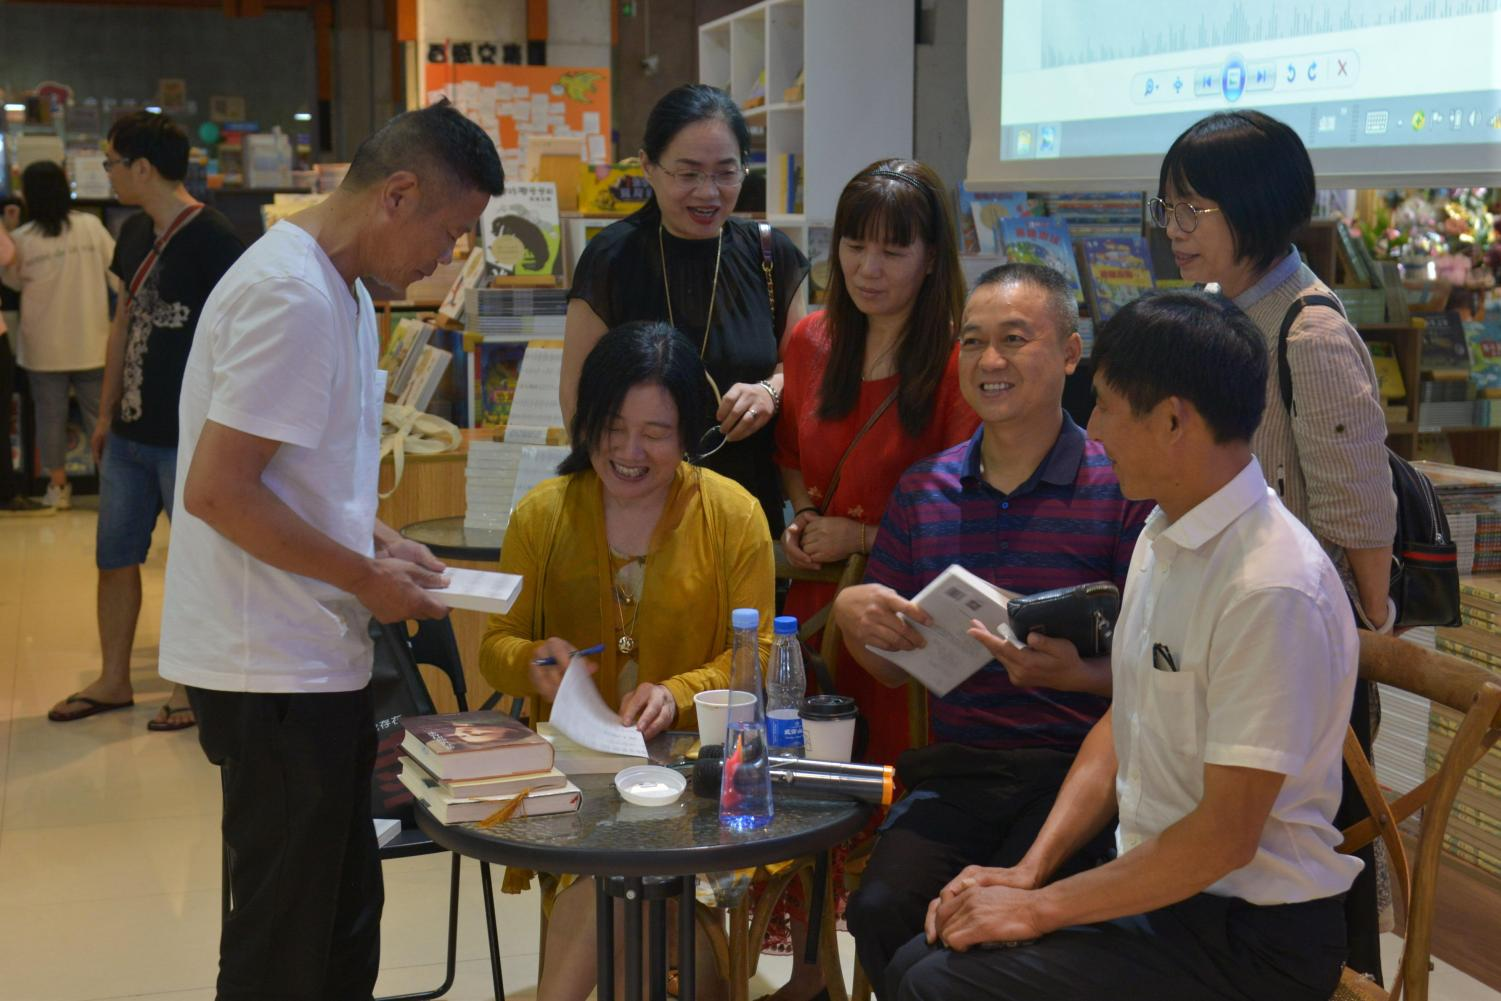 Mrs. Zhang is speaking about the book she translated, while on her book tour in China over summer 2019.